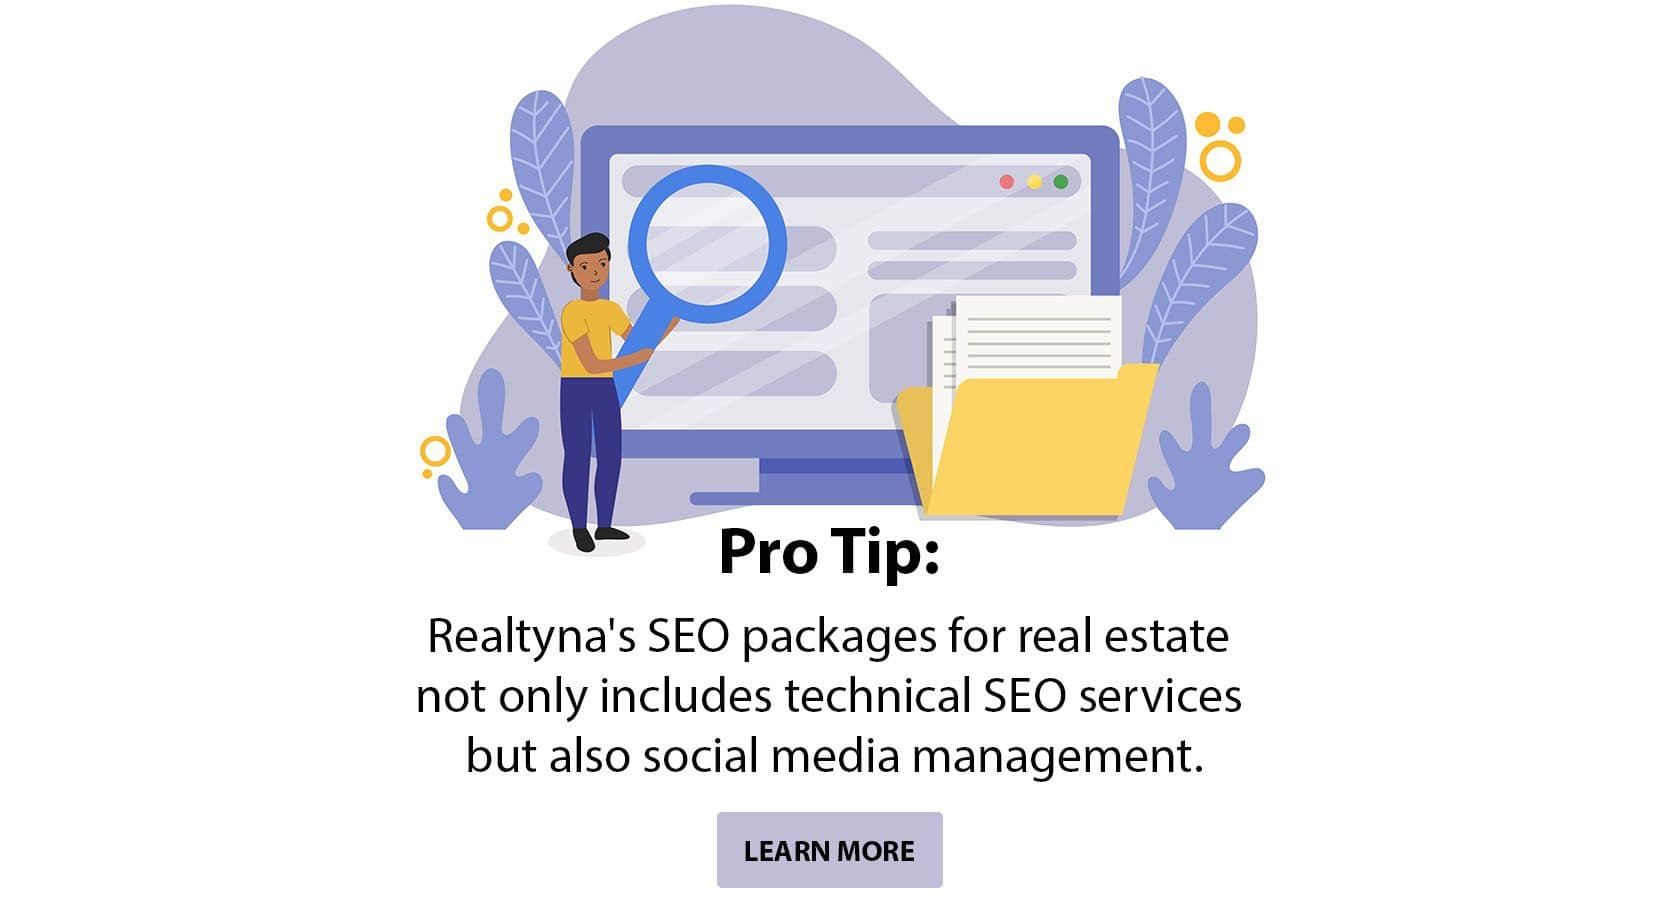 Realtyna's SEP Packages